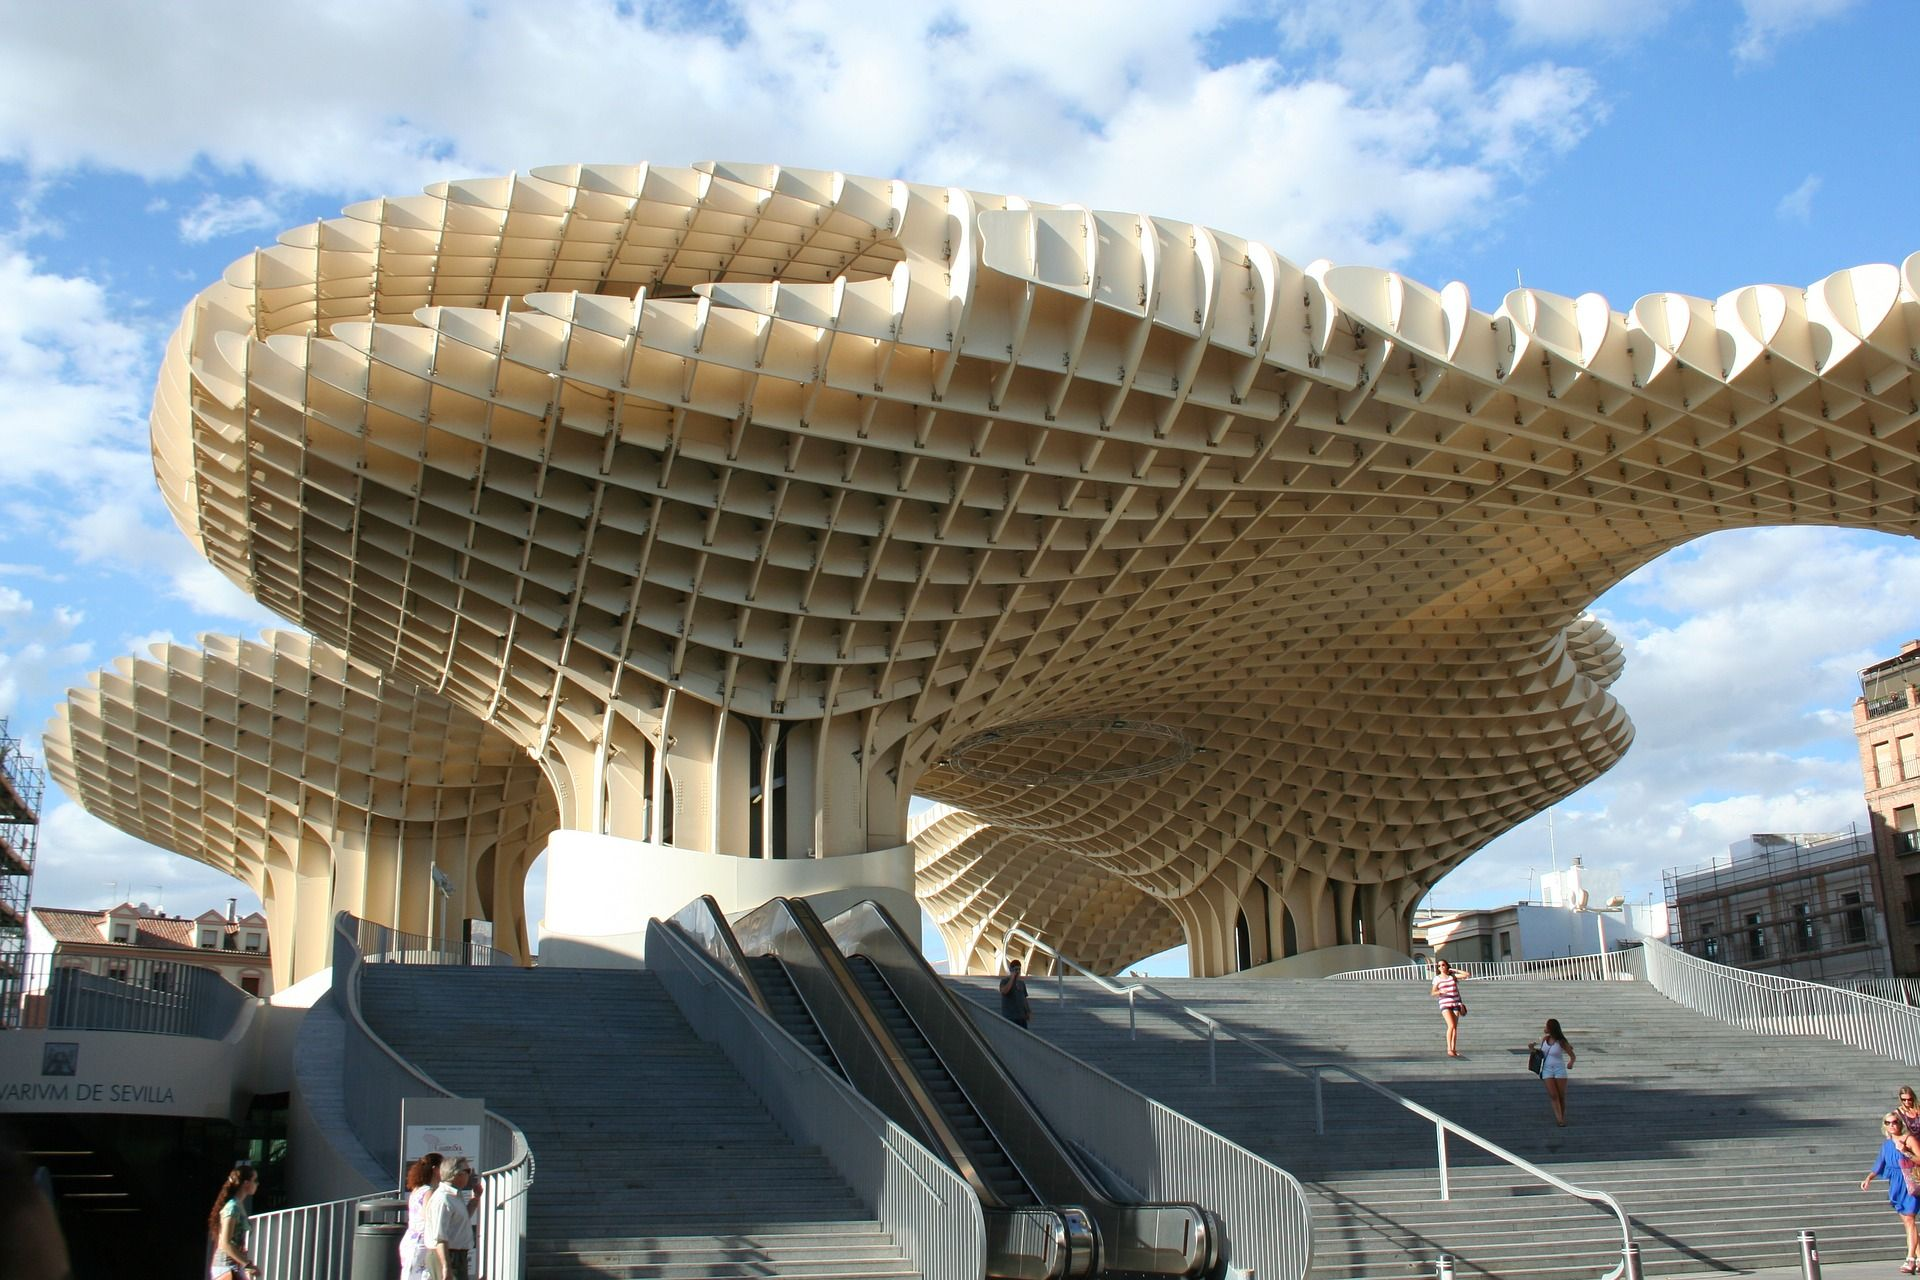 What you need to know before you go to see the Mushrooms of Seville